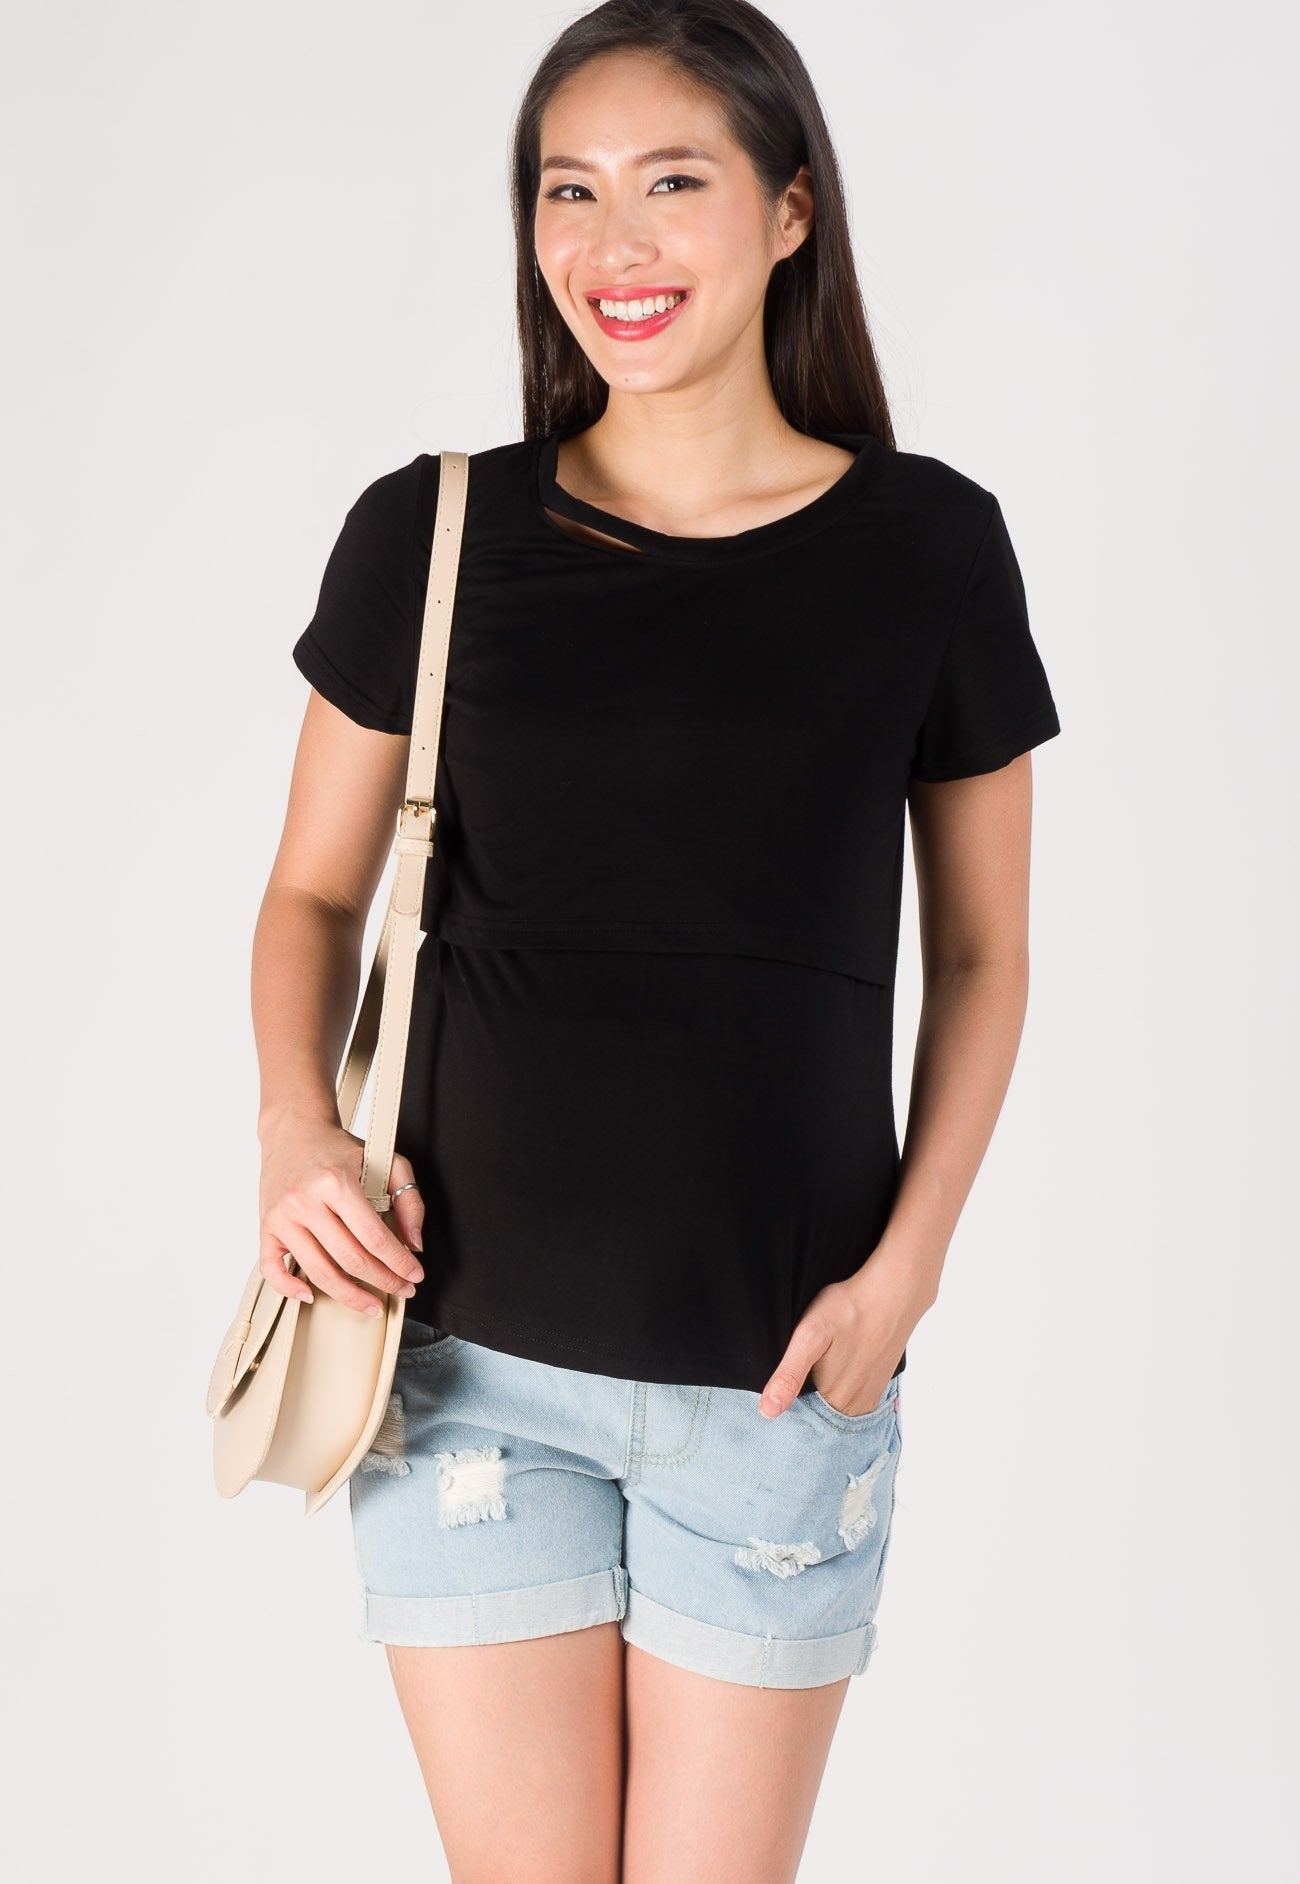 Embellished Neckline Comfy Nursing Top in Black Nursing Wear Mothercot